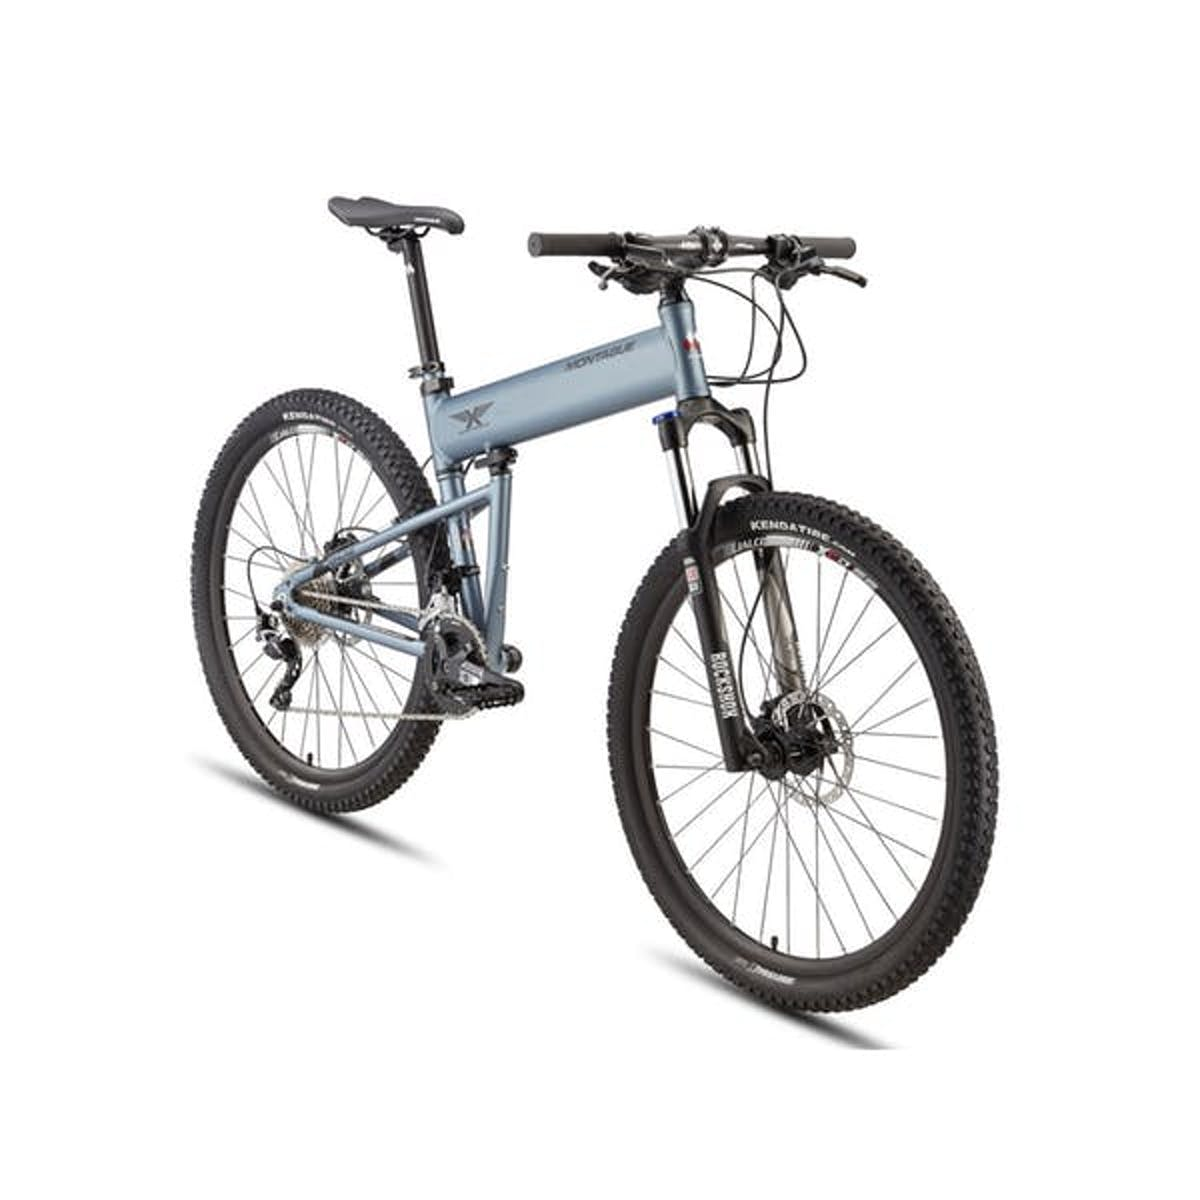 A silver mountain bike.